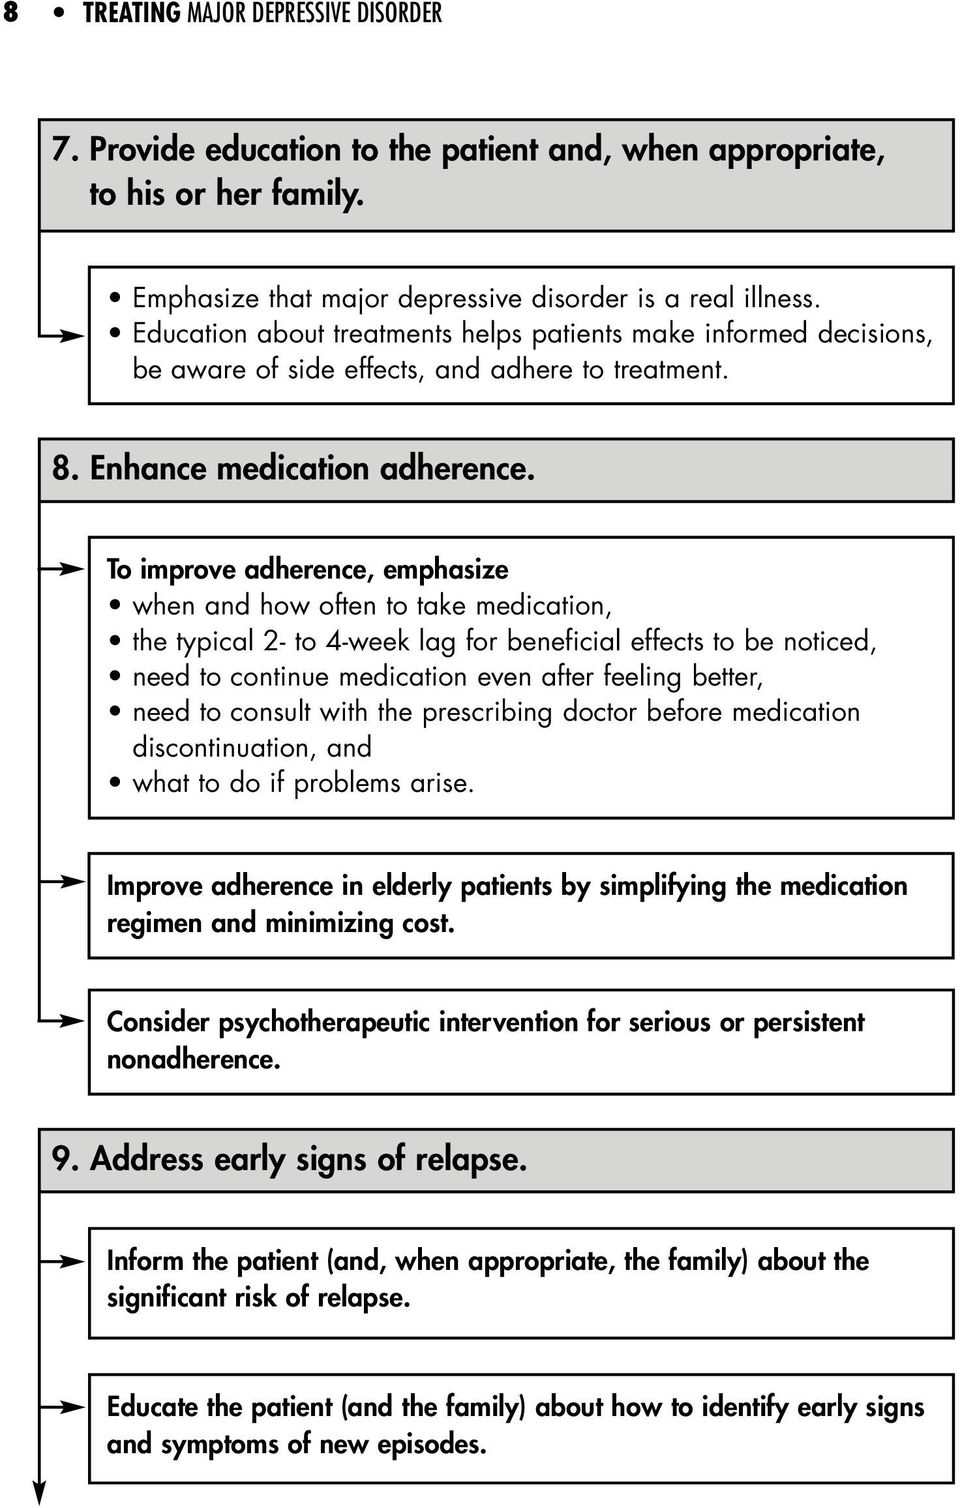 To improve adherence, emphasize when and how often to take medication, the typical 2- to 4-week lag for beneficial effects to be noticed, need to continue medication even after feeling better, need